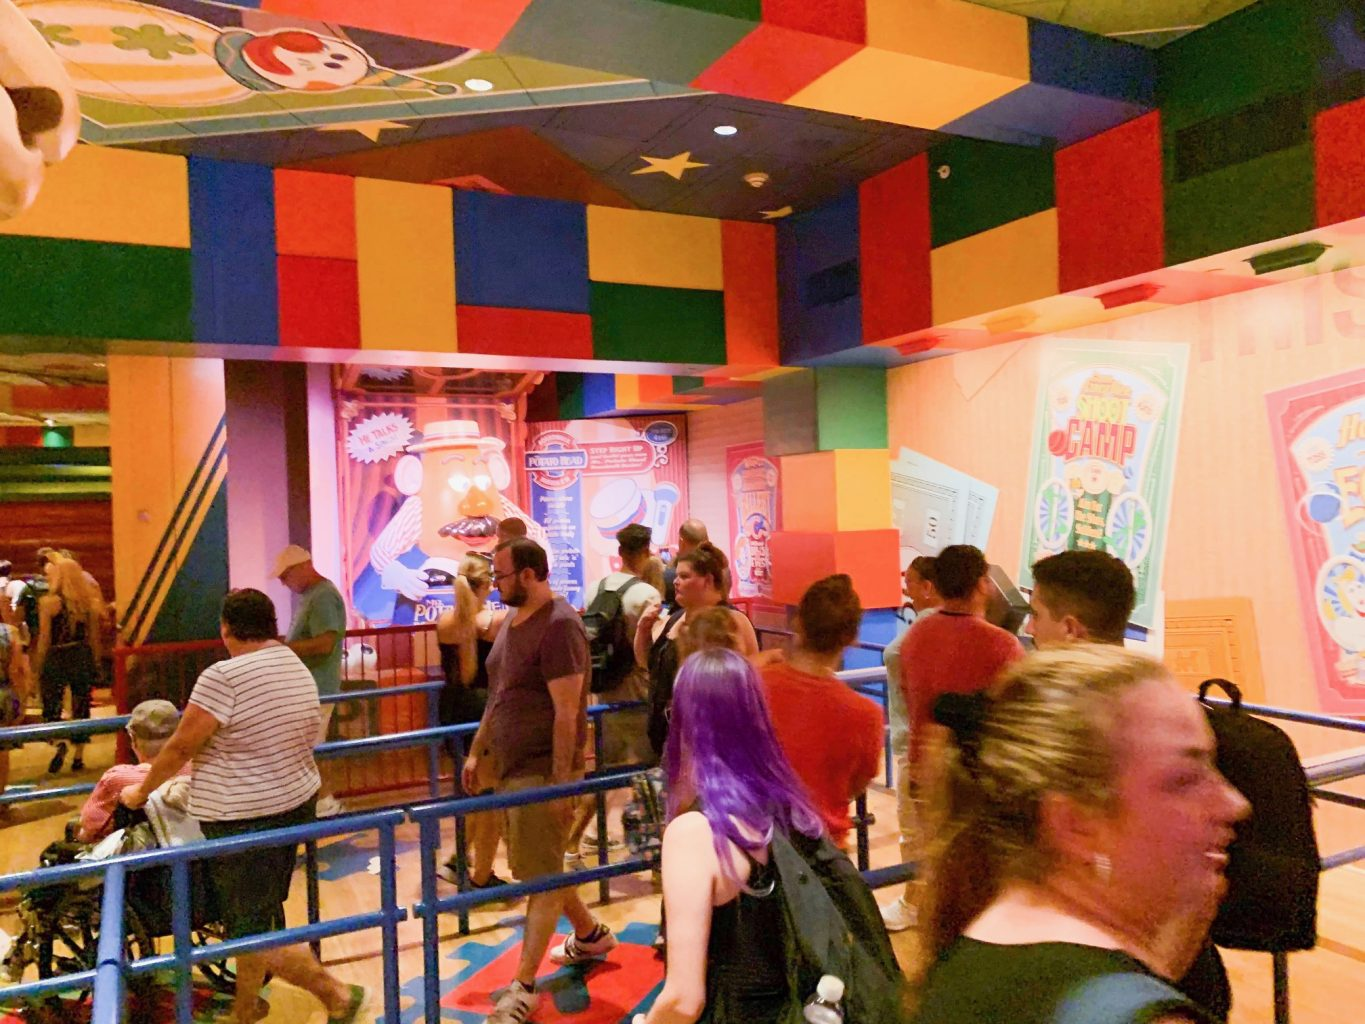 Difficult lines at Disney with autism guests